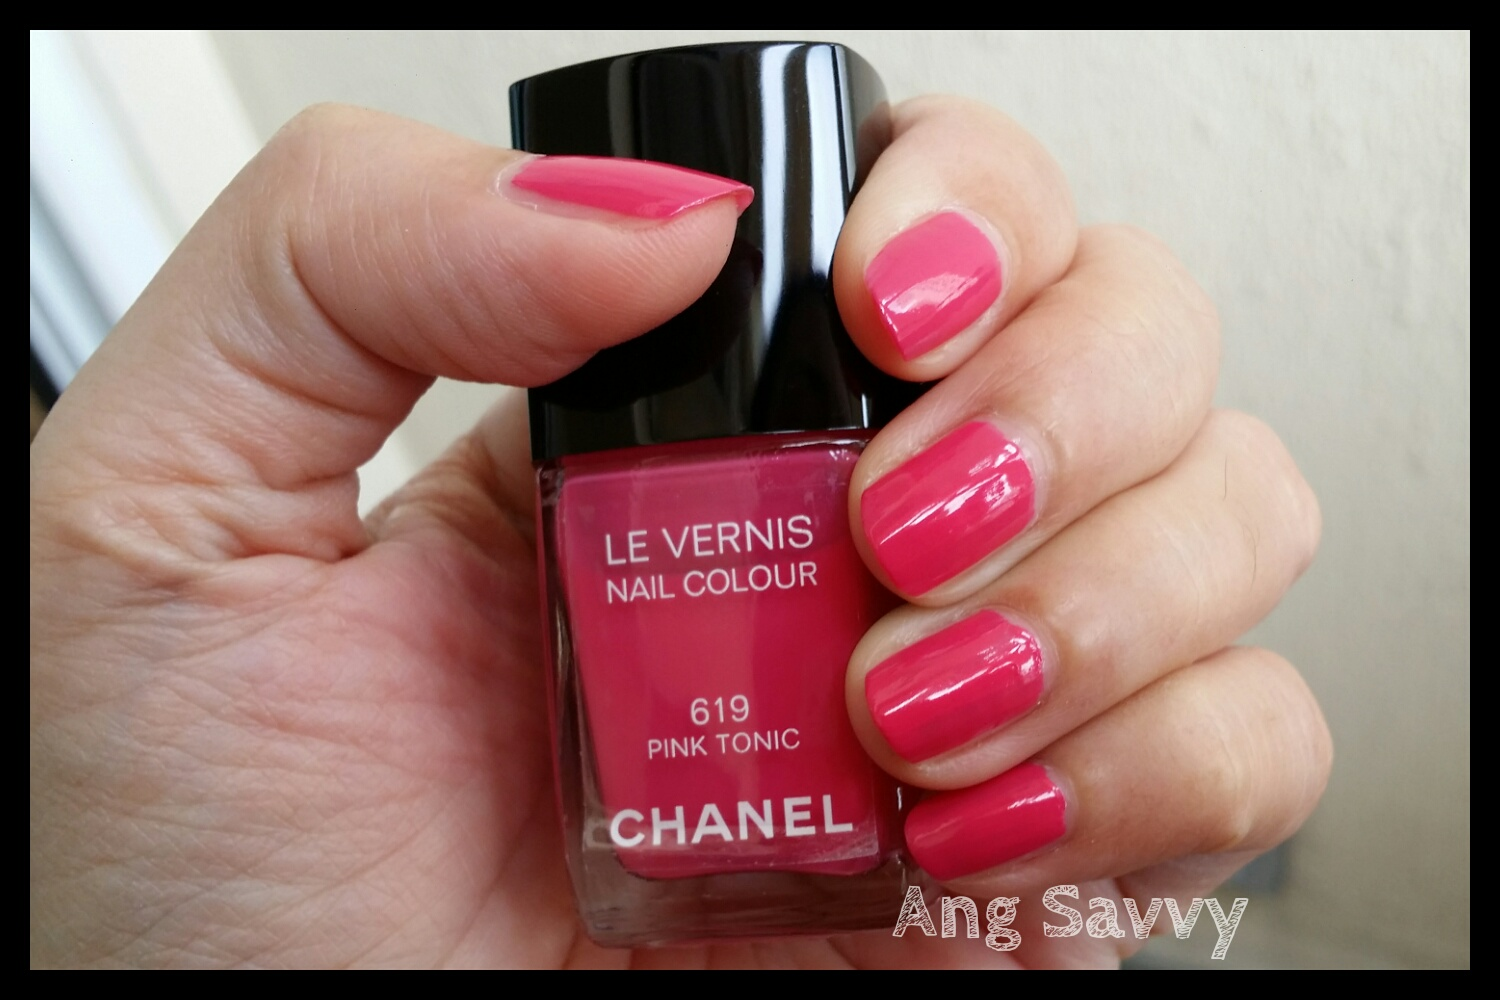 Chanel Le Vernis Nail Colour 619 Pink Tonic